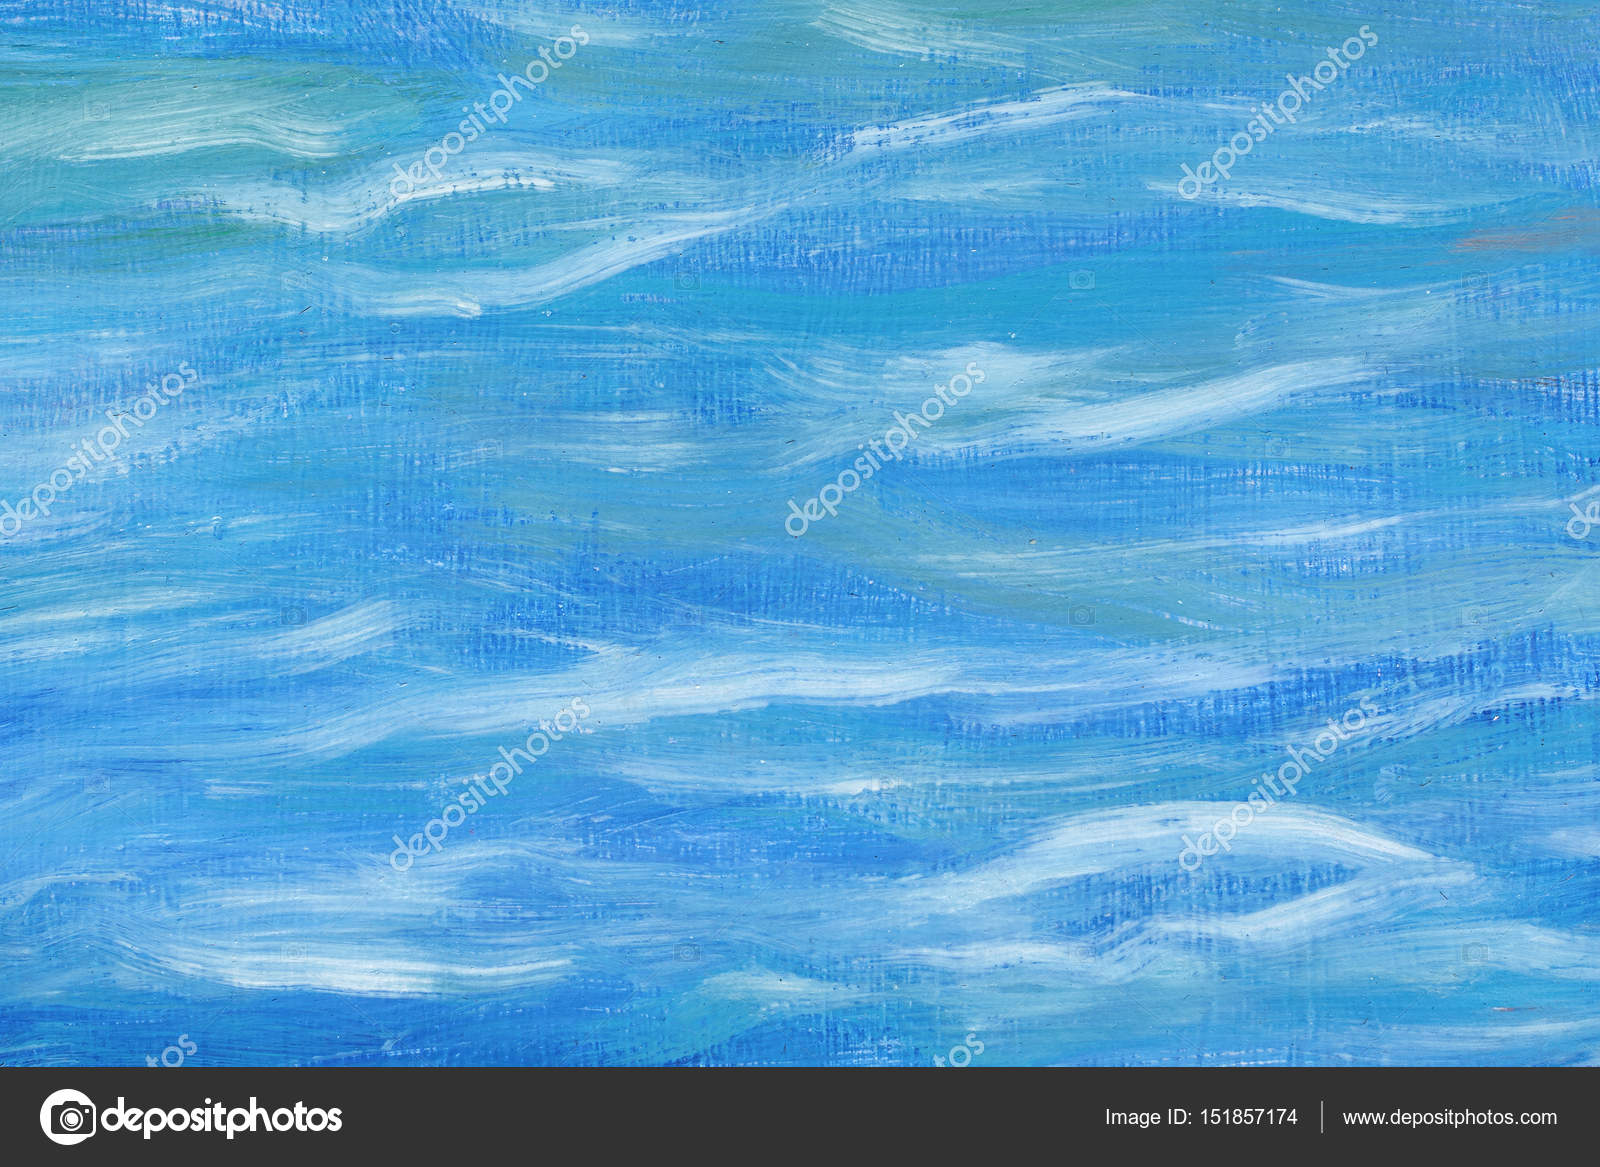 Beautiful abstract background. Oil painting, sea abstraction. Mixed blue and white ...